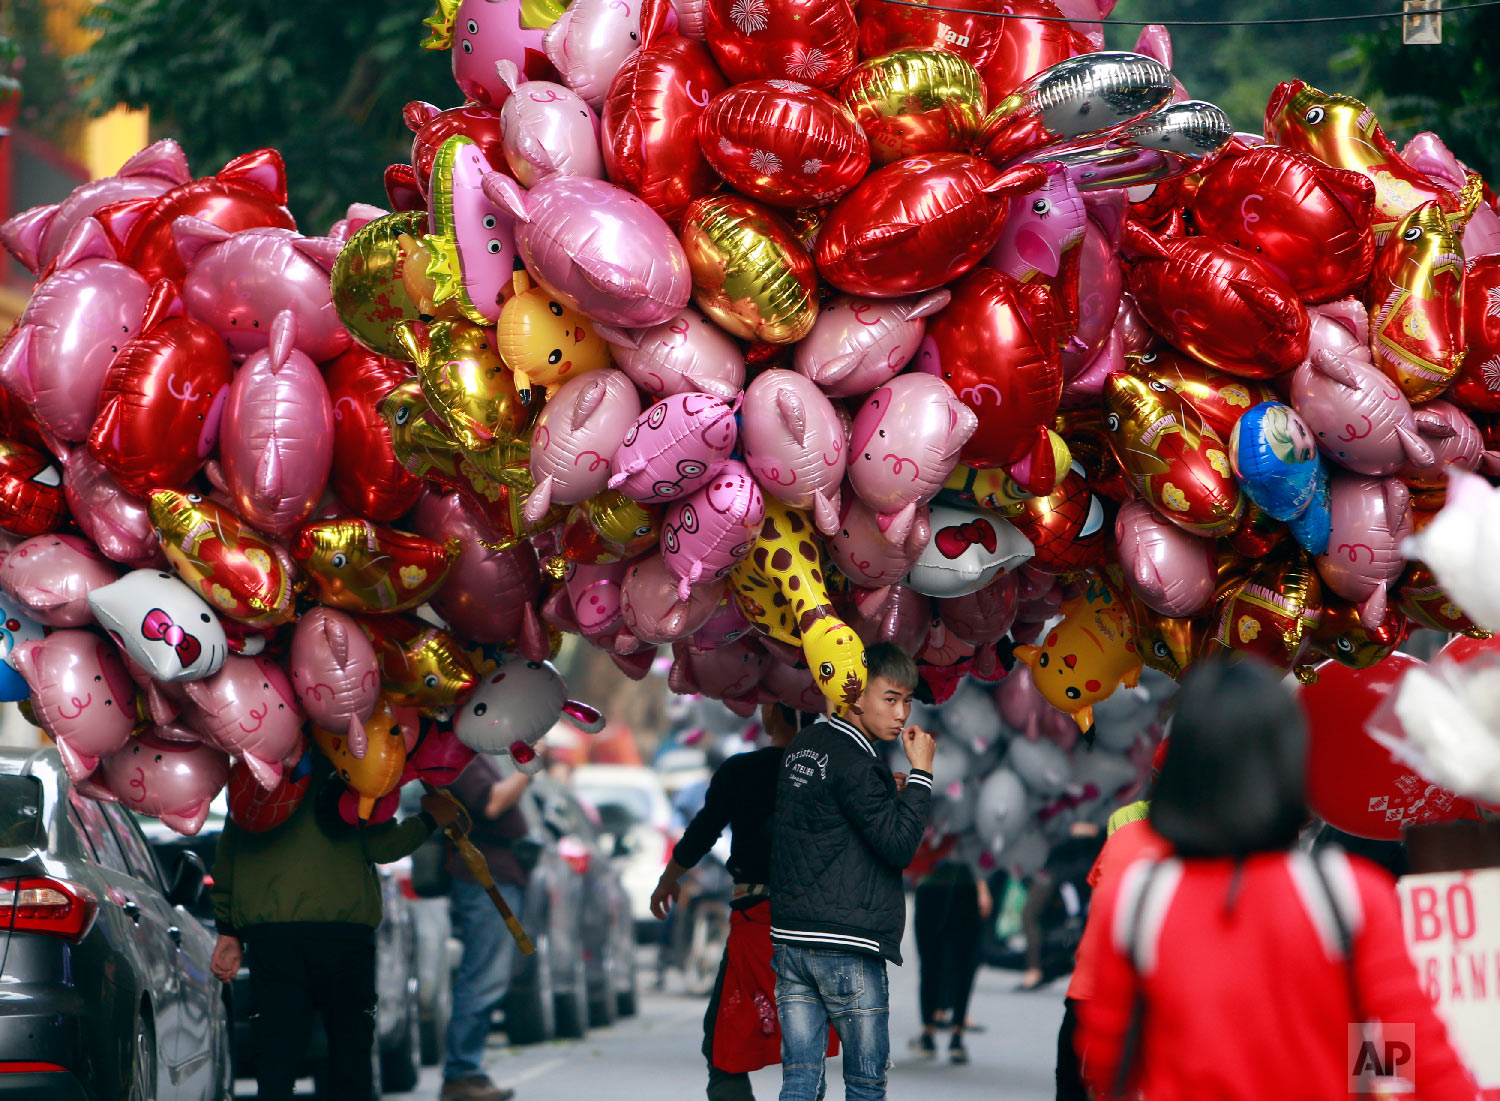 Vendors carrying pig-shaped balloons for sale to mark the Lunar New Year in Hanoi, Vietnam, Sunday, Feb. 3, 2019. (AP Photo/Hau Dinh)